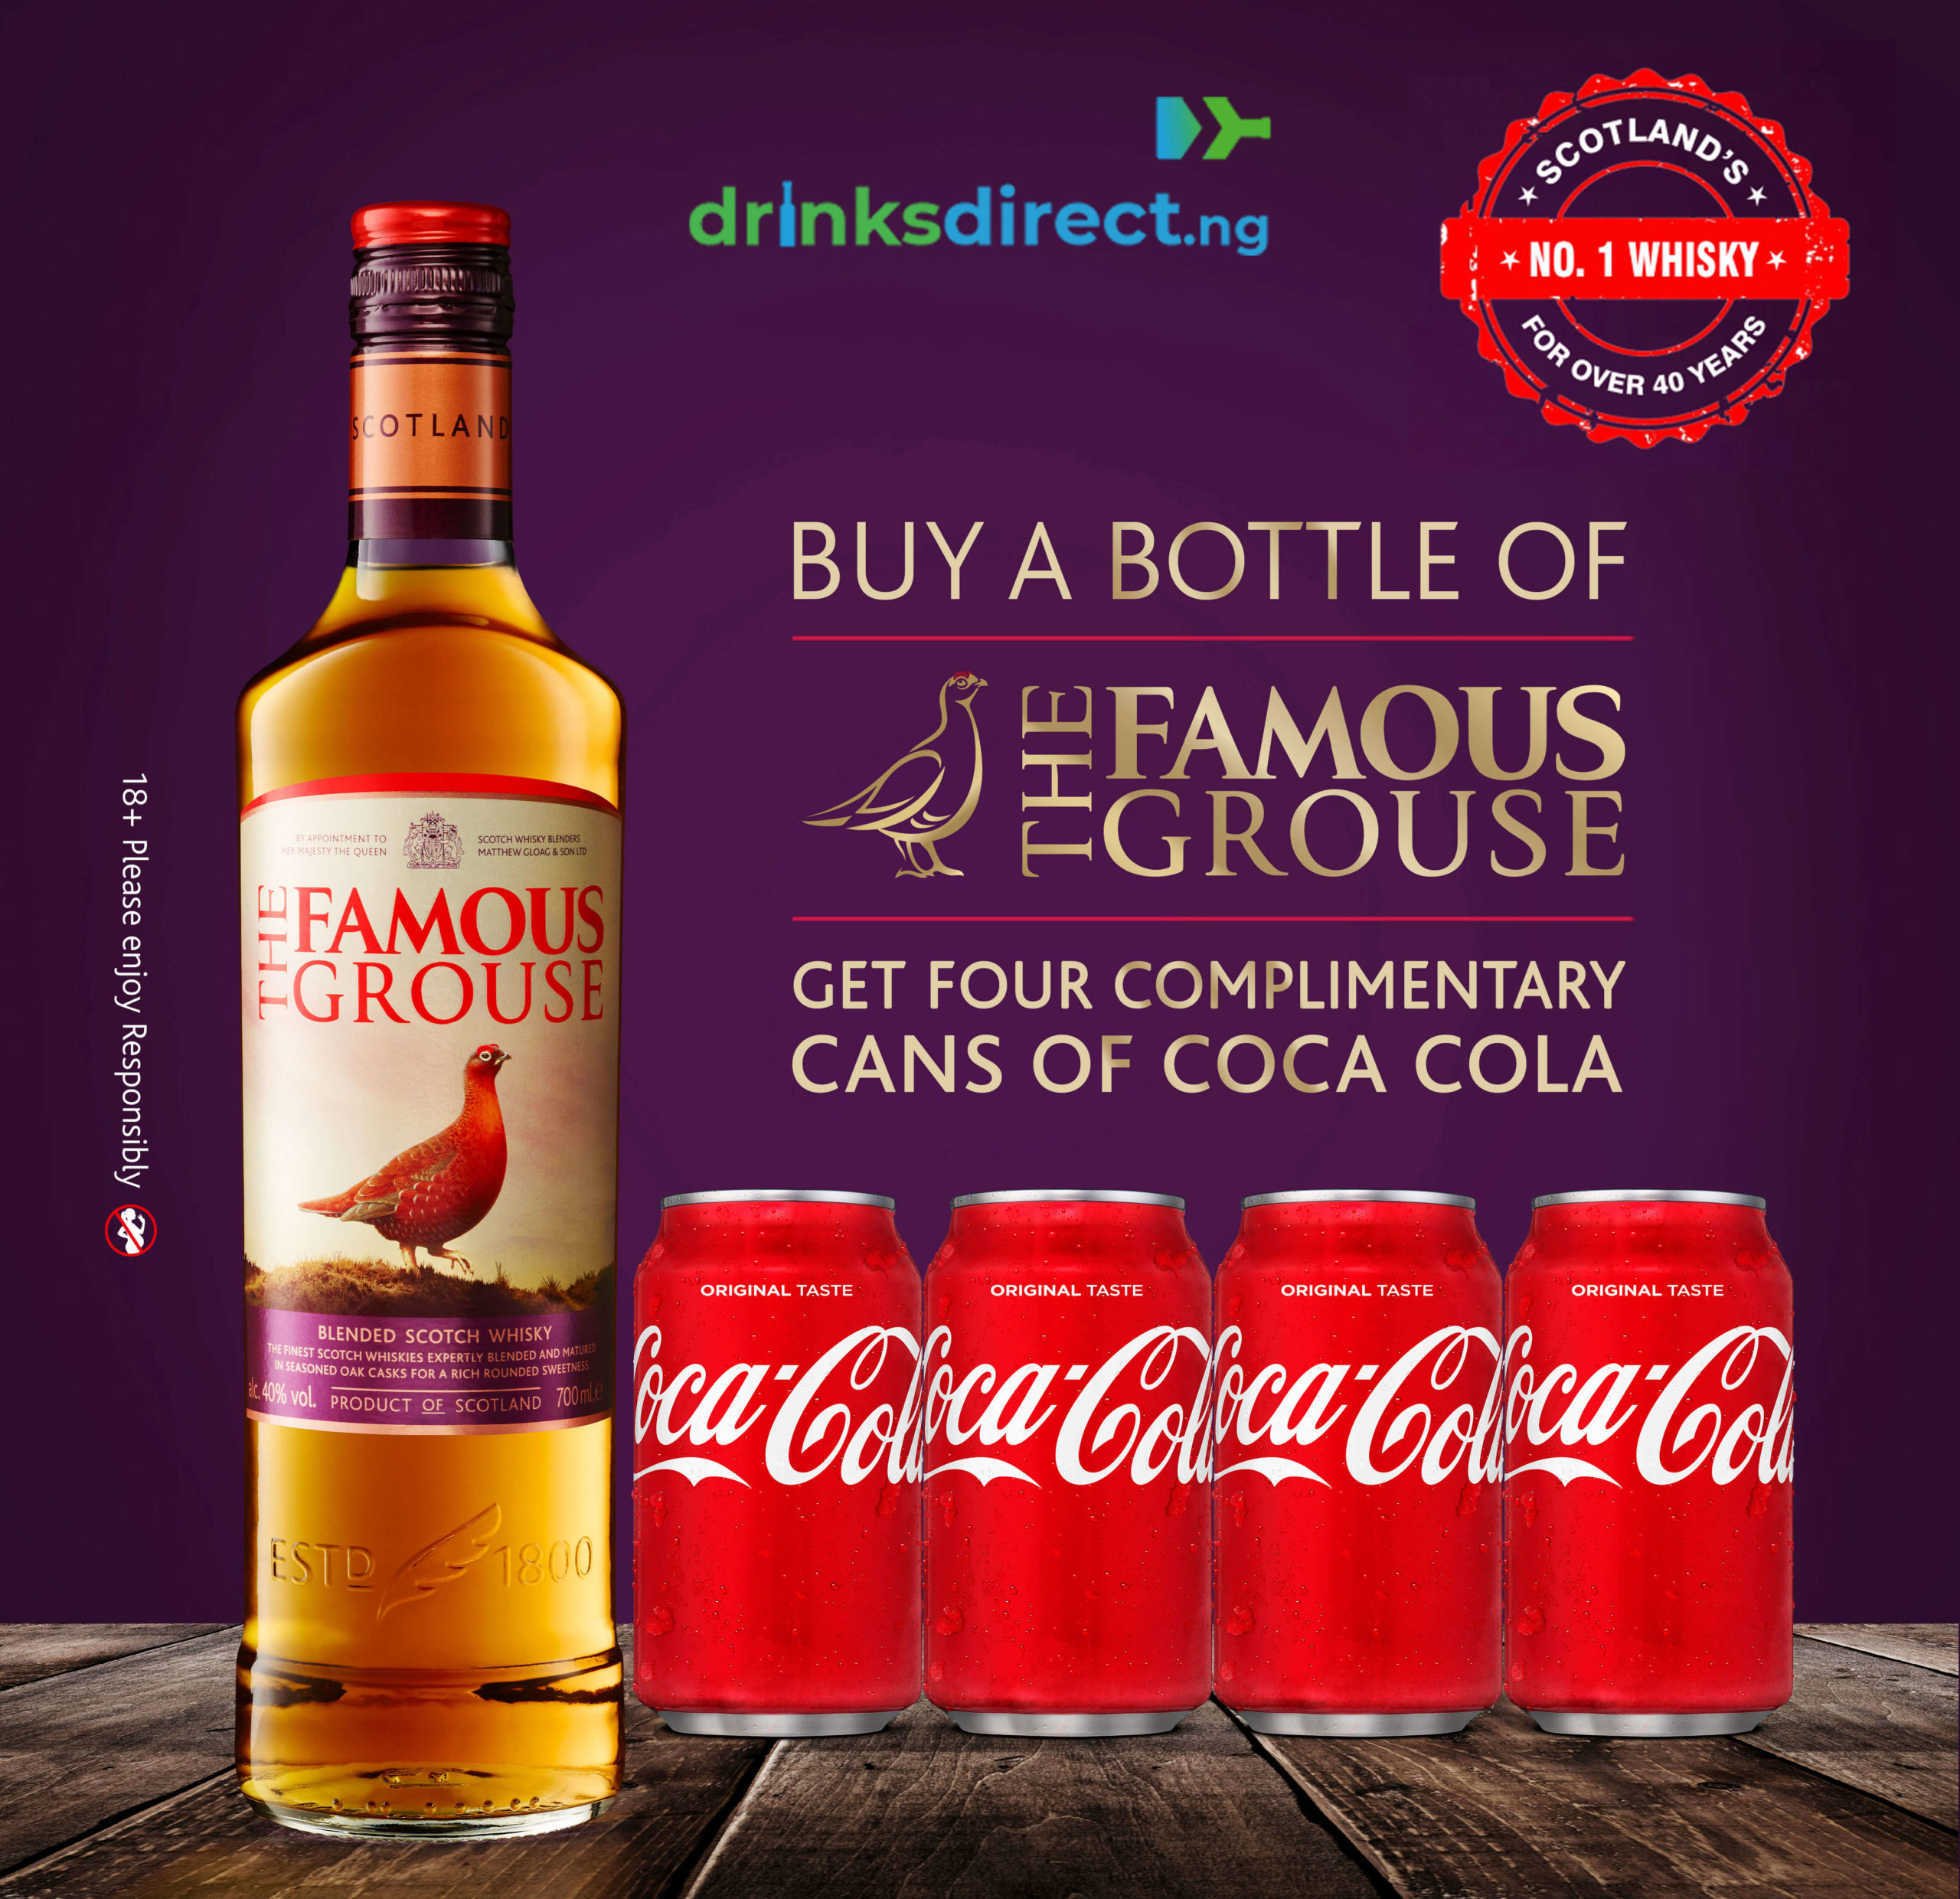 the-famous-grouse-drinks-direct